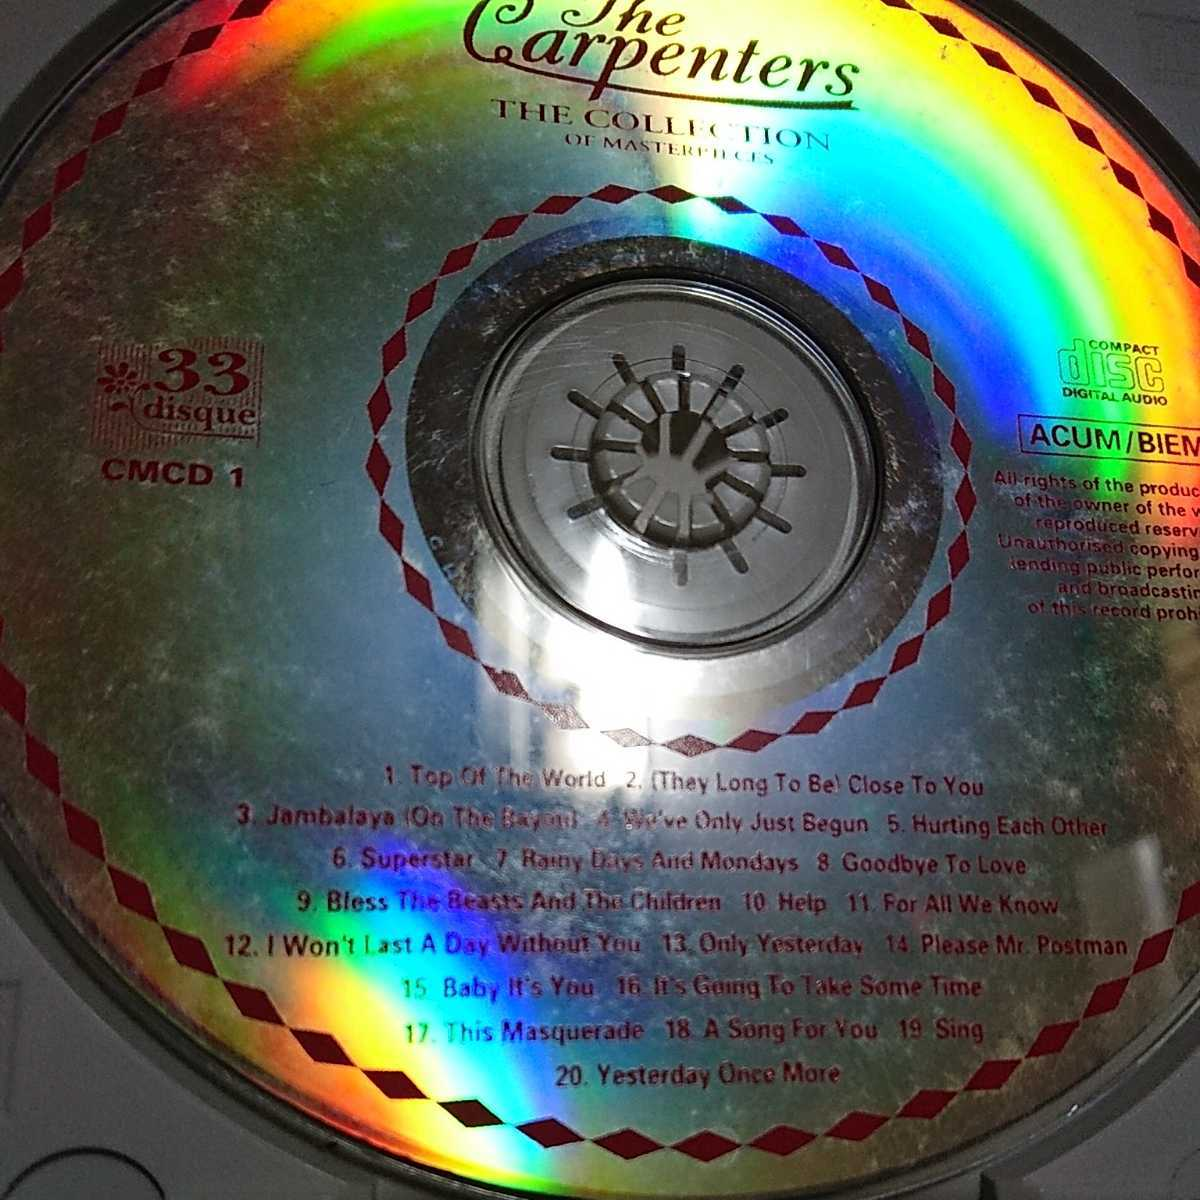 THE CARPENTERS THE COLLECTION OF MASTERPIECES CD カーペンターズ